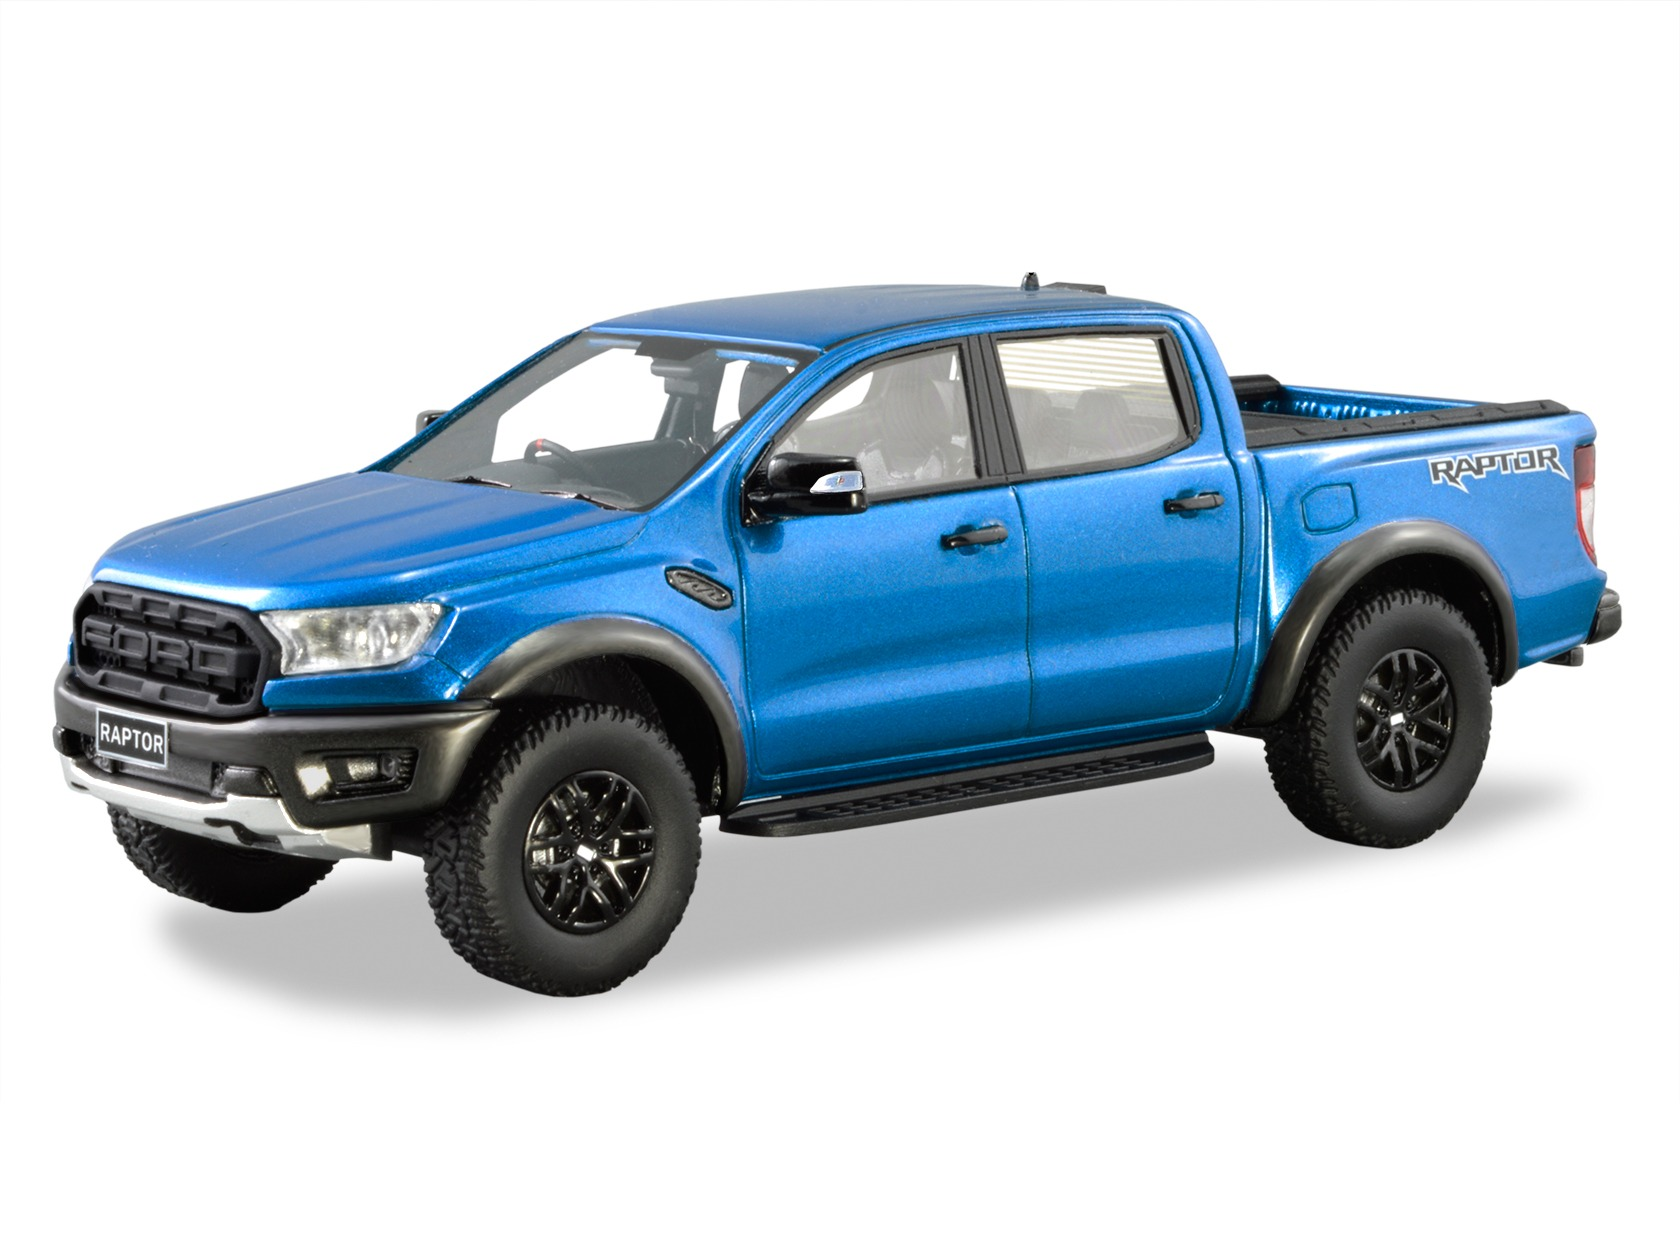 2019 Ford Ranger Raptor – Blue